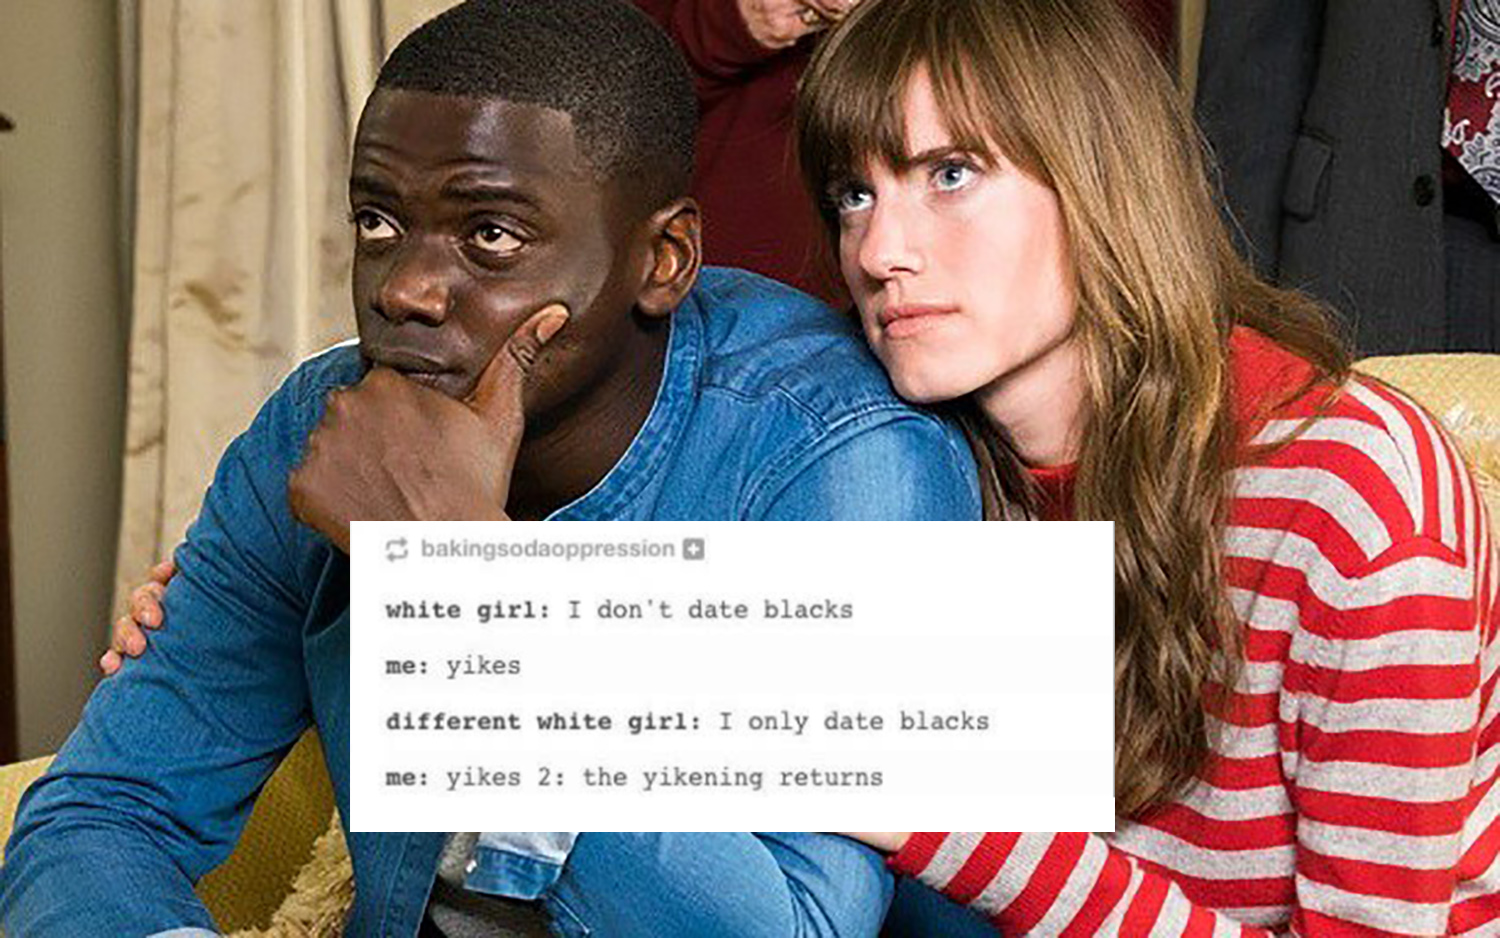 White only dating sites